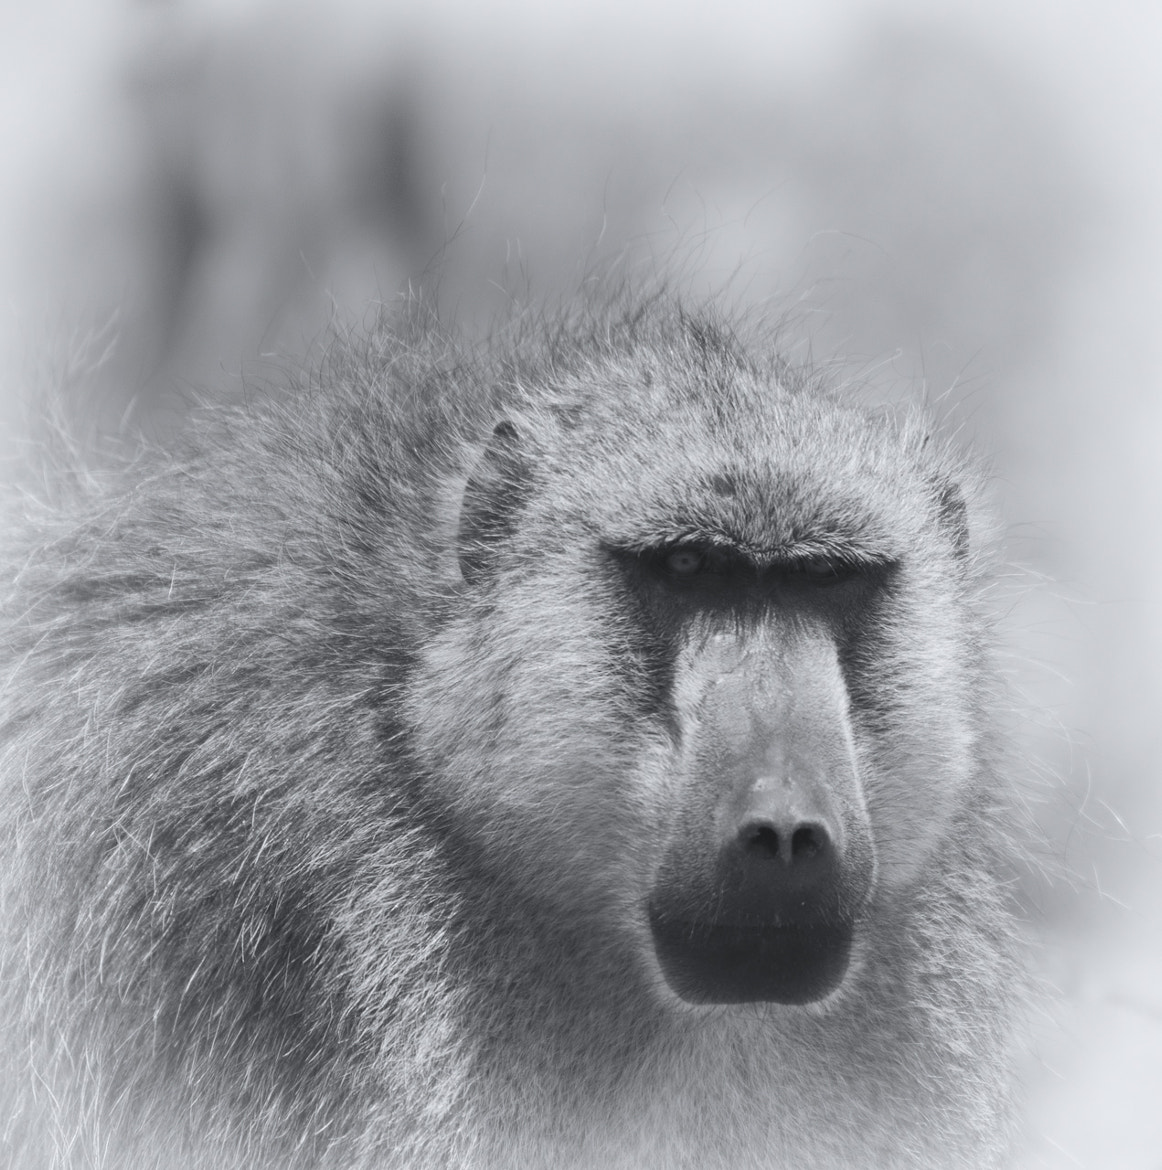 Photograph The look of the baboon by Lorenzo Lambertucci on 500px